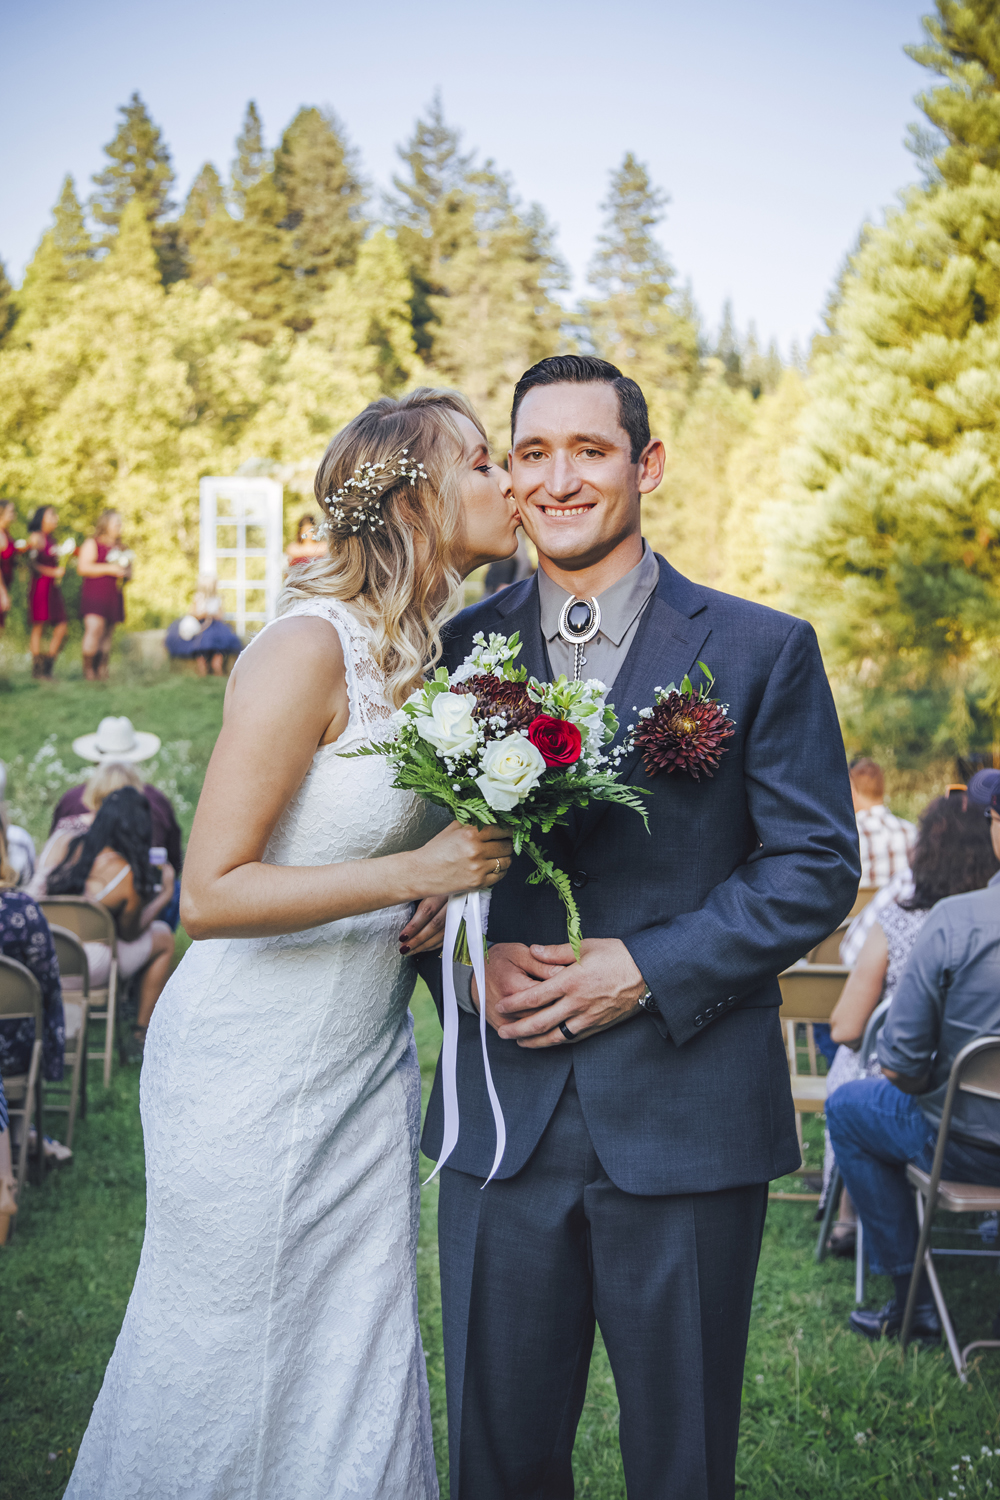 Rustic-Forest-Country-Wedding-Chico-CA65.jpg